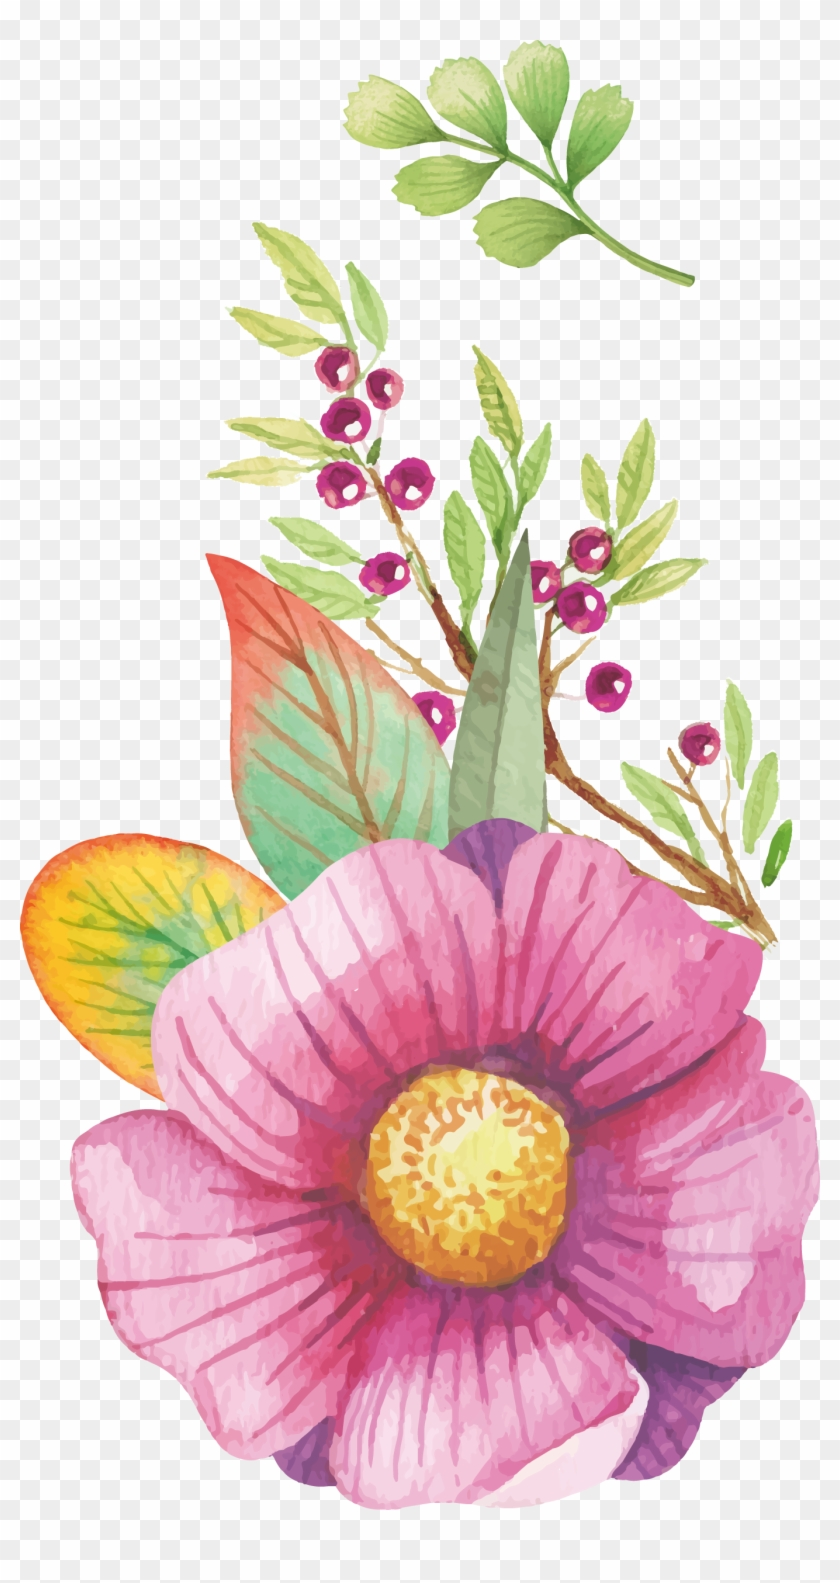 Watercolour Flowers Watercolor Painting Clip Art Watercolor Floral